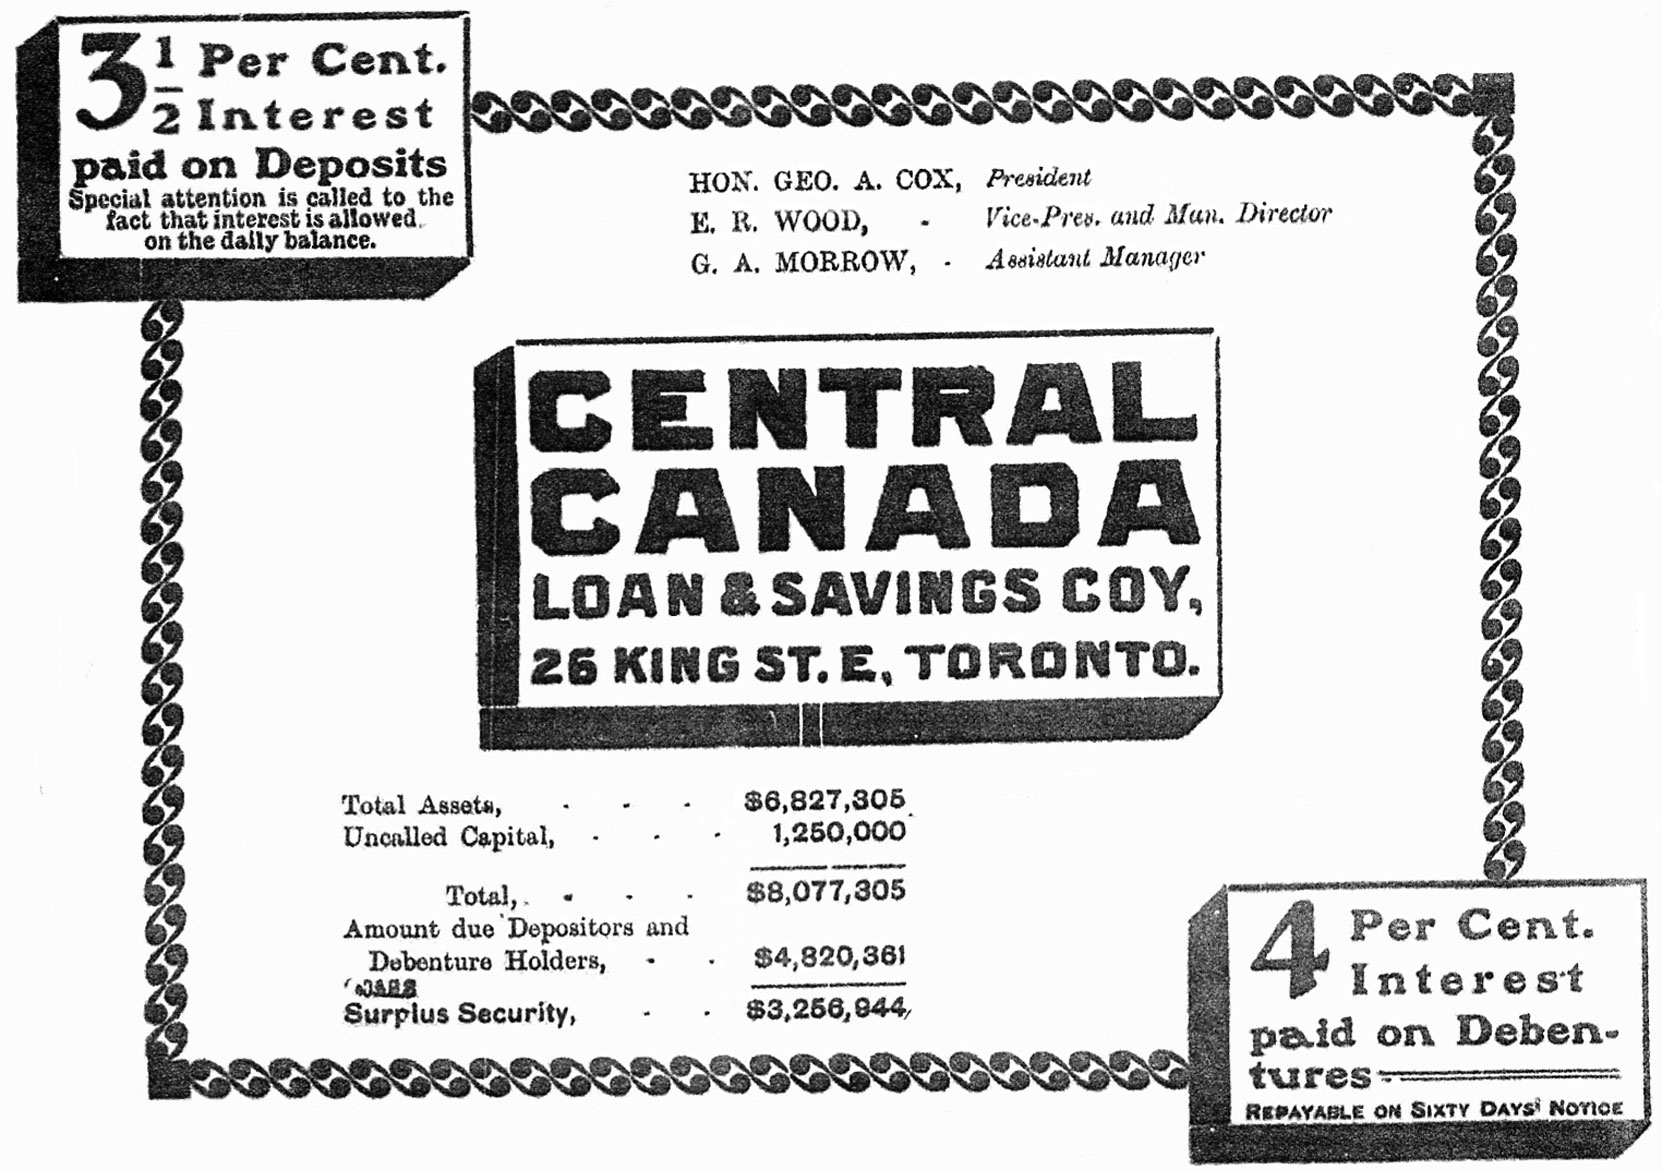 Central Canada Loan & Savings Company advertisement, 1904. Note Senator George A. Cox, President and Edward Rogers Wood, Vice President and Managing Director. (Author's collection)